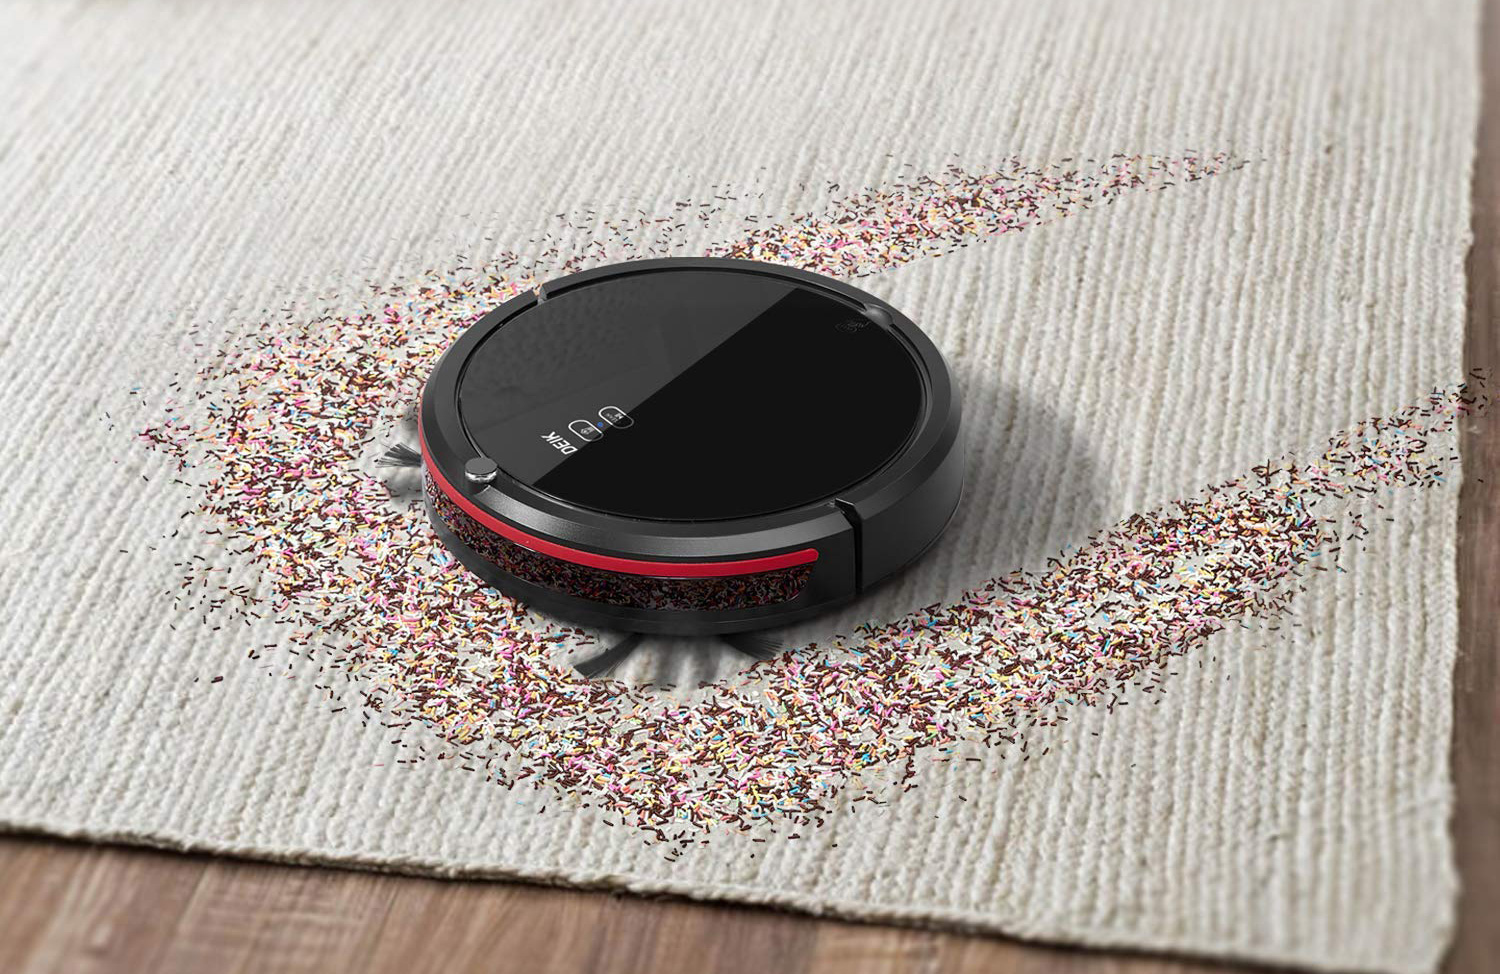 This $99 robot vacuum has features typically reserved for models that cost $300+